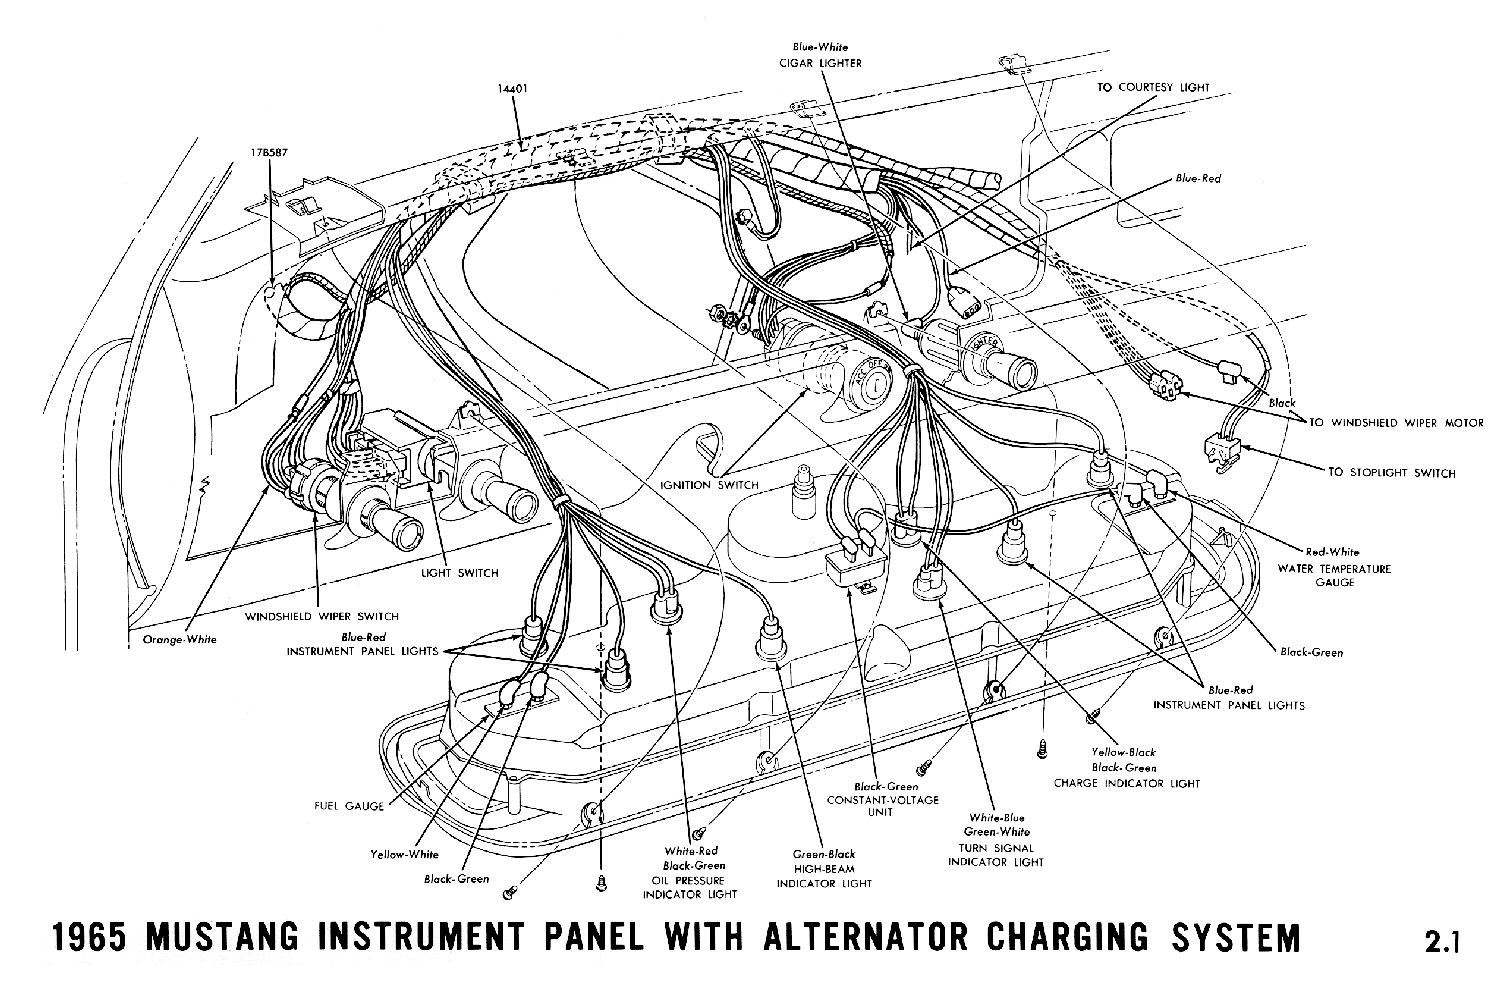 1965 Mustang Wiring Diagrams Average Joe Restoration Furthermore Wiper Motor Diagram Together With Instrument Cluster Connections